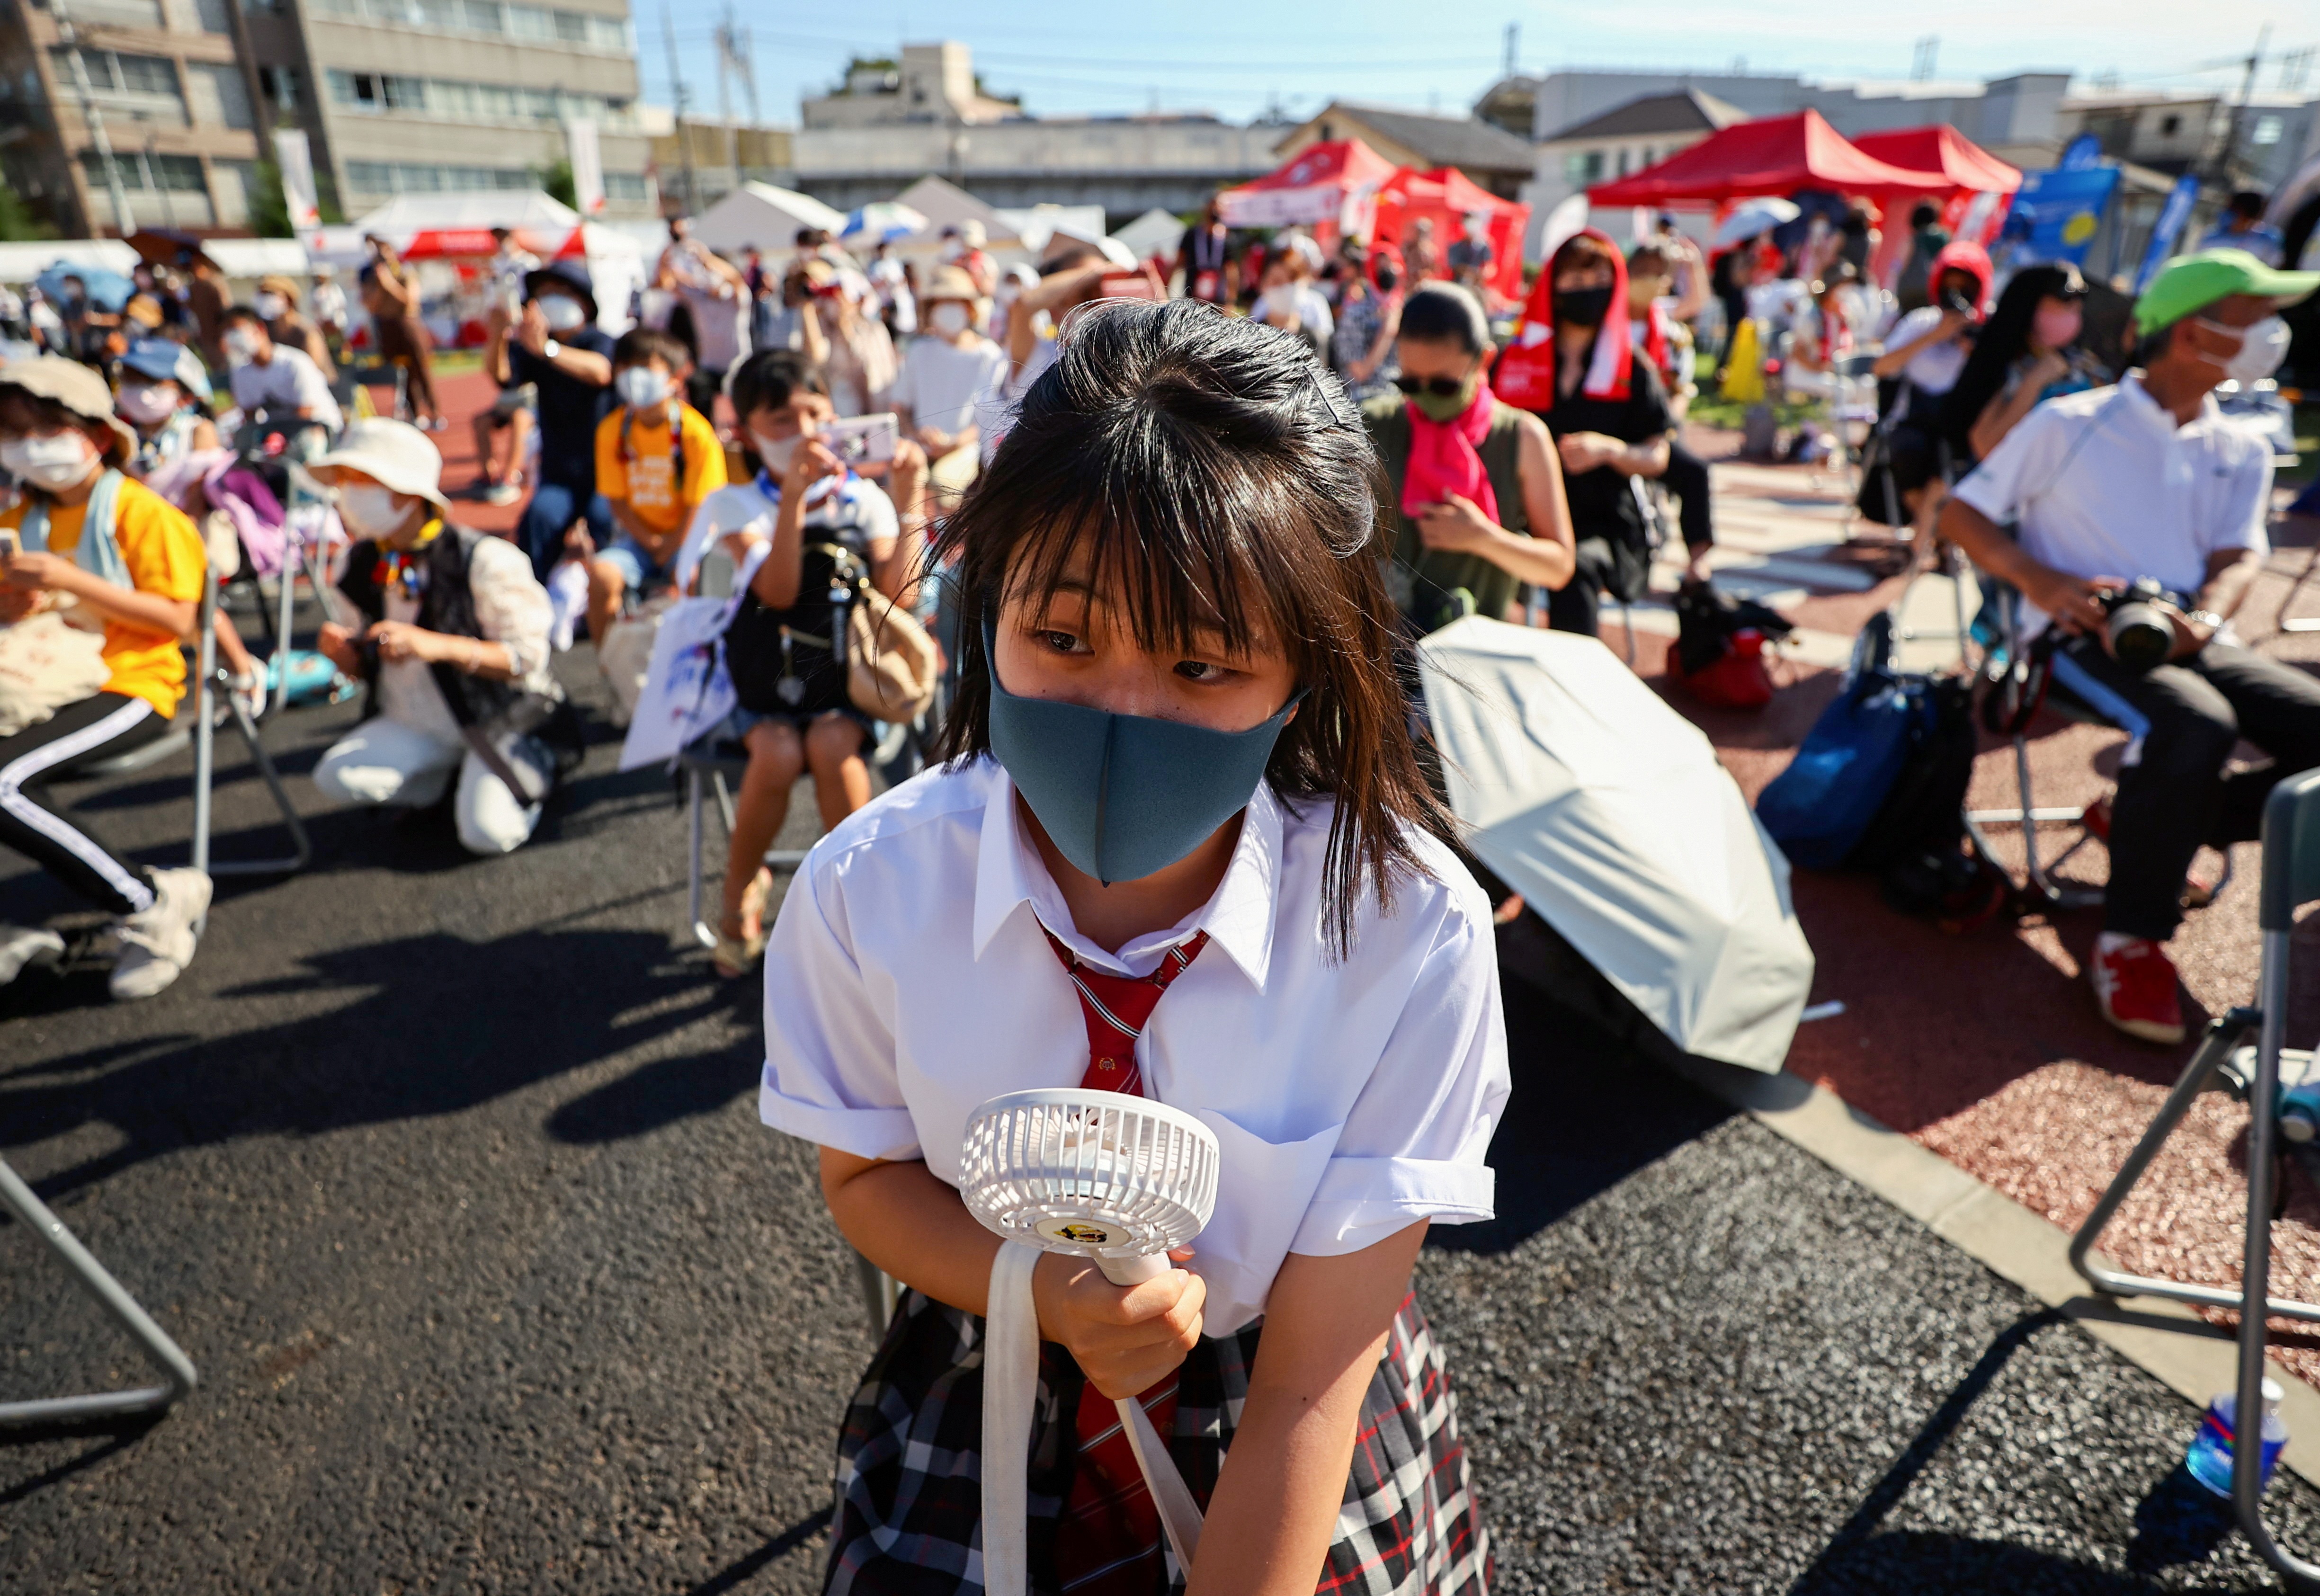 A family member of a torch relay runner wearing a protective mask uses a portable electric fan to cool down as she attends a torch kiss event during Tokyo 2020 Olympic torch relay celebration at Shinagawa Central Park in Tokyo, Japan, July 21, 2021. REUTERS/Issei Kato